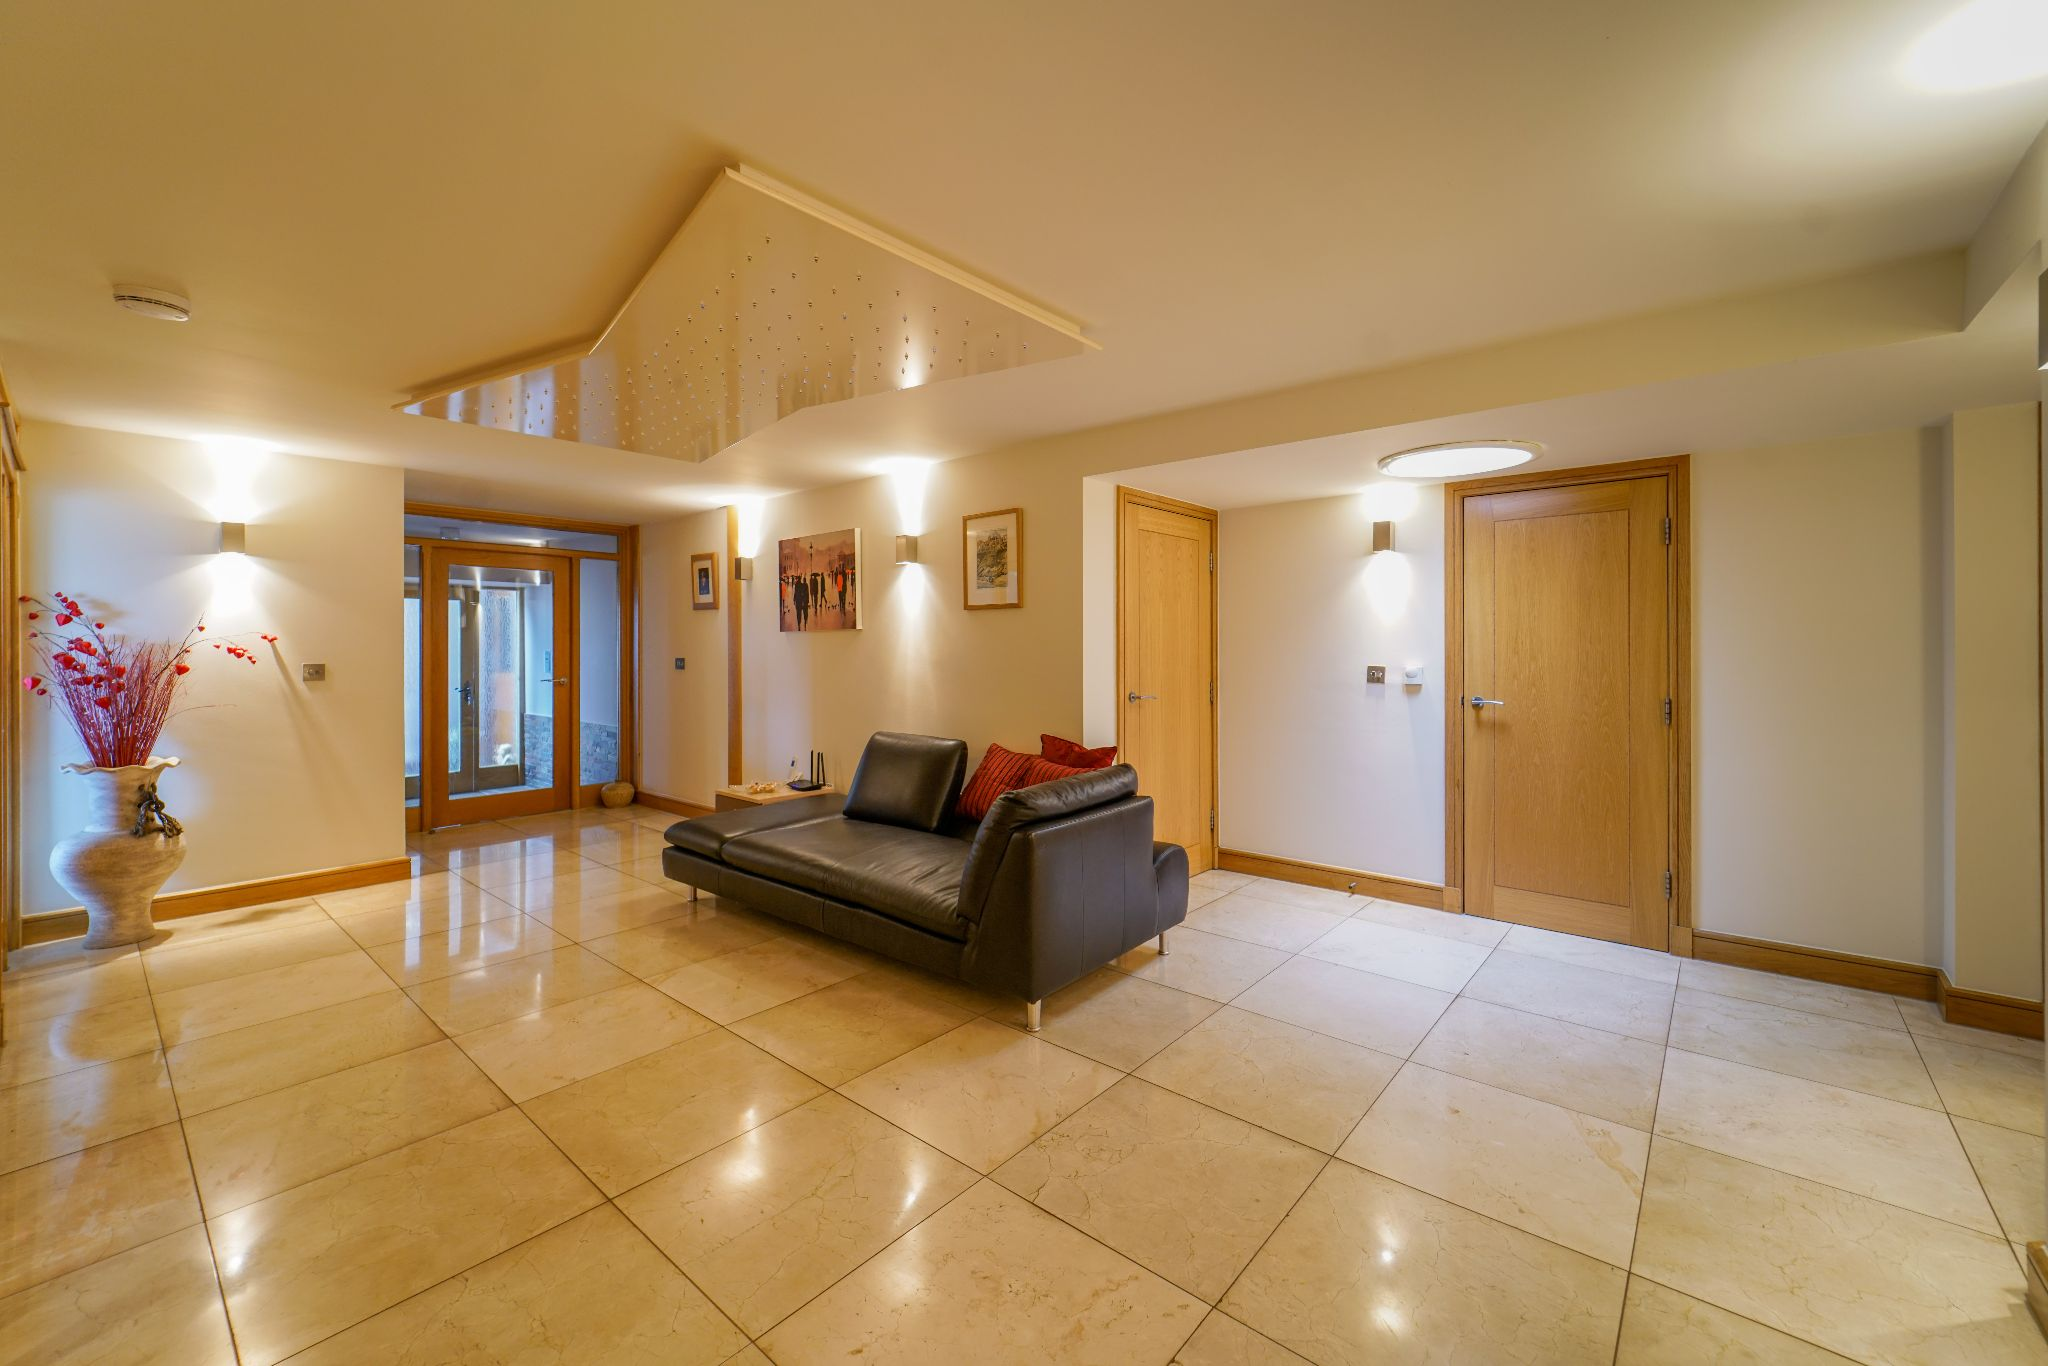 5 bedroom barn conversion house For Sale in Bolton - Photograph 11